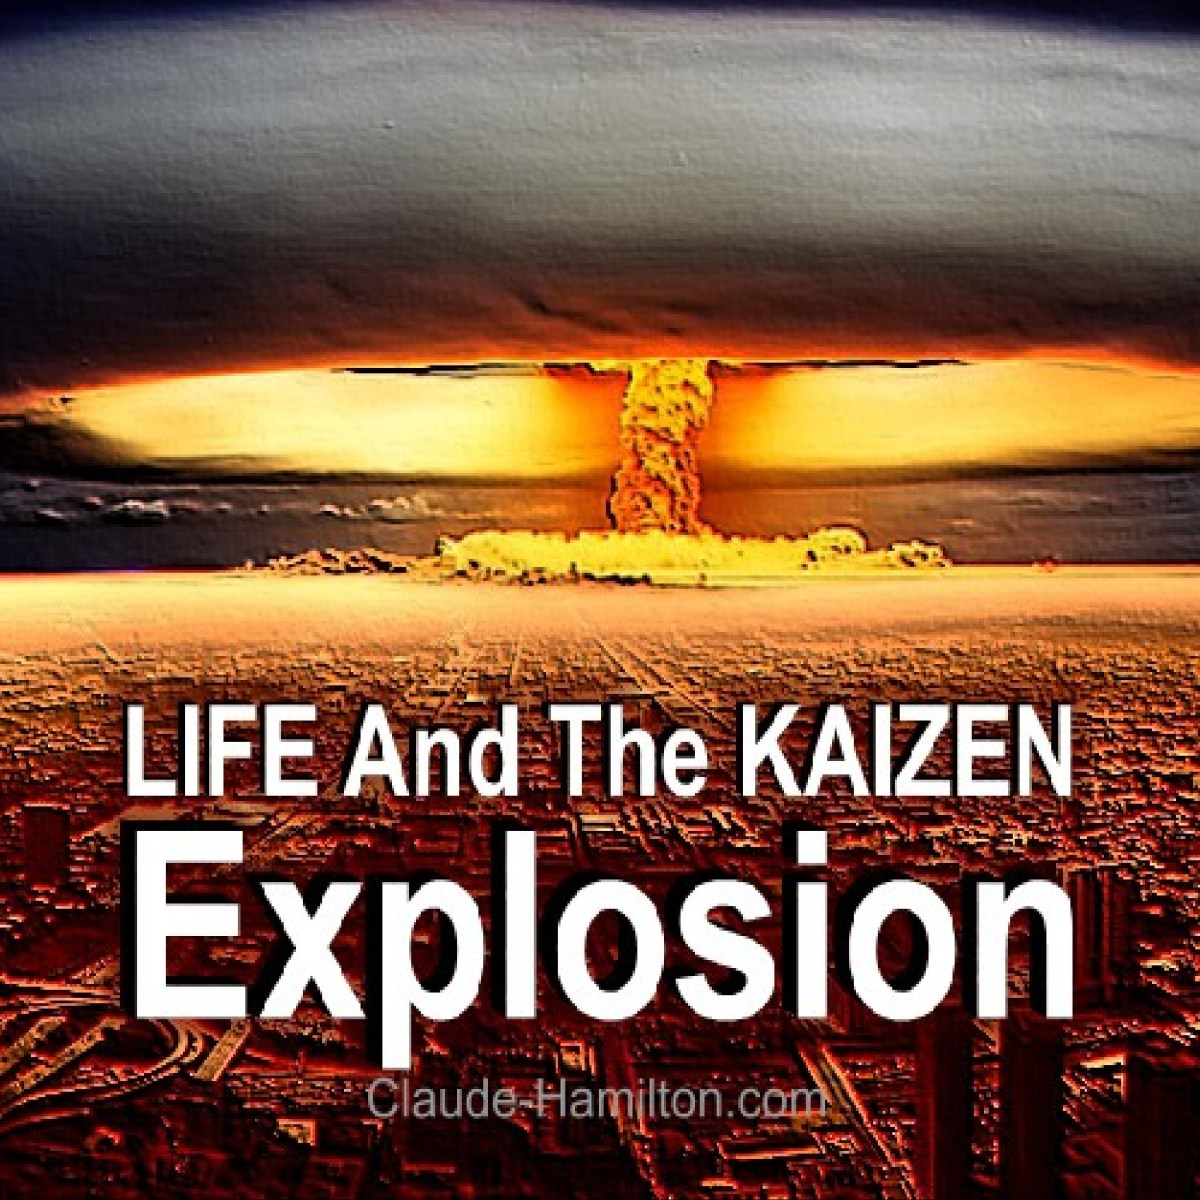 LIFE And The KAIZEN Explosion